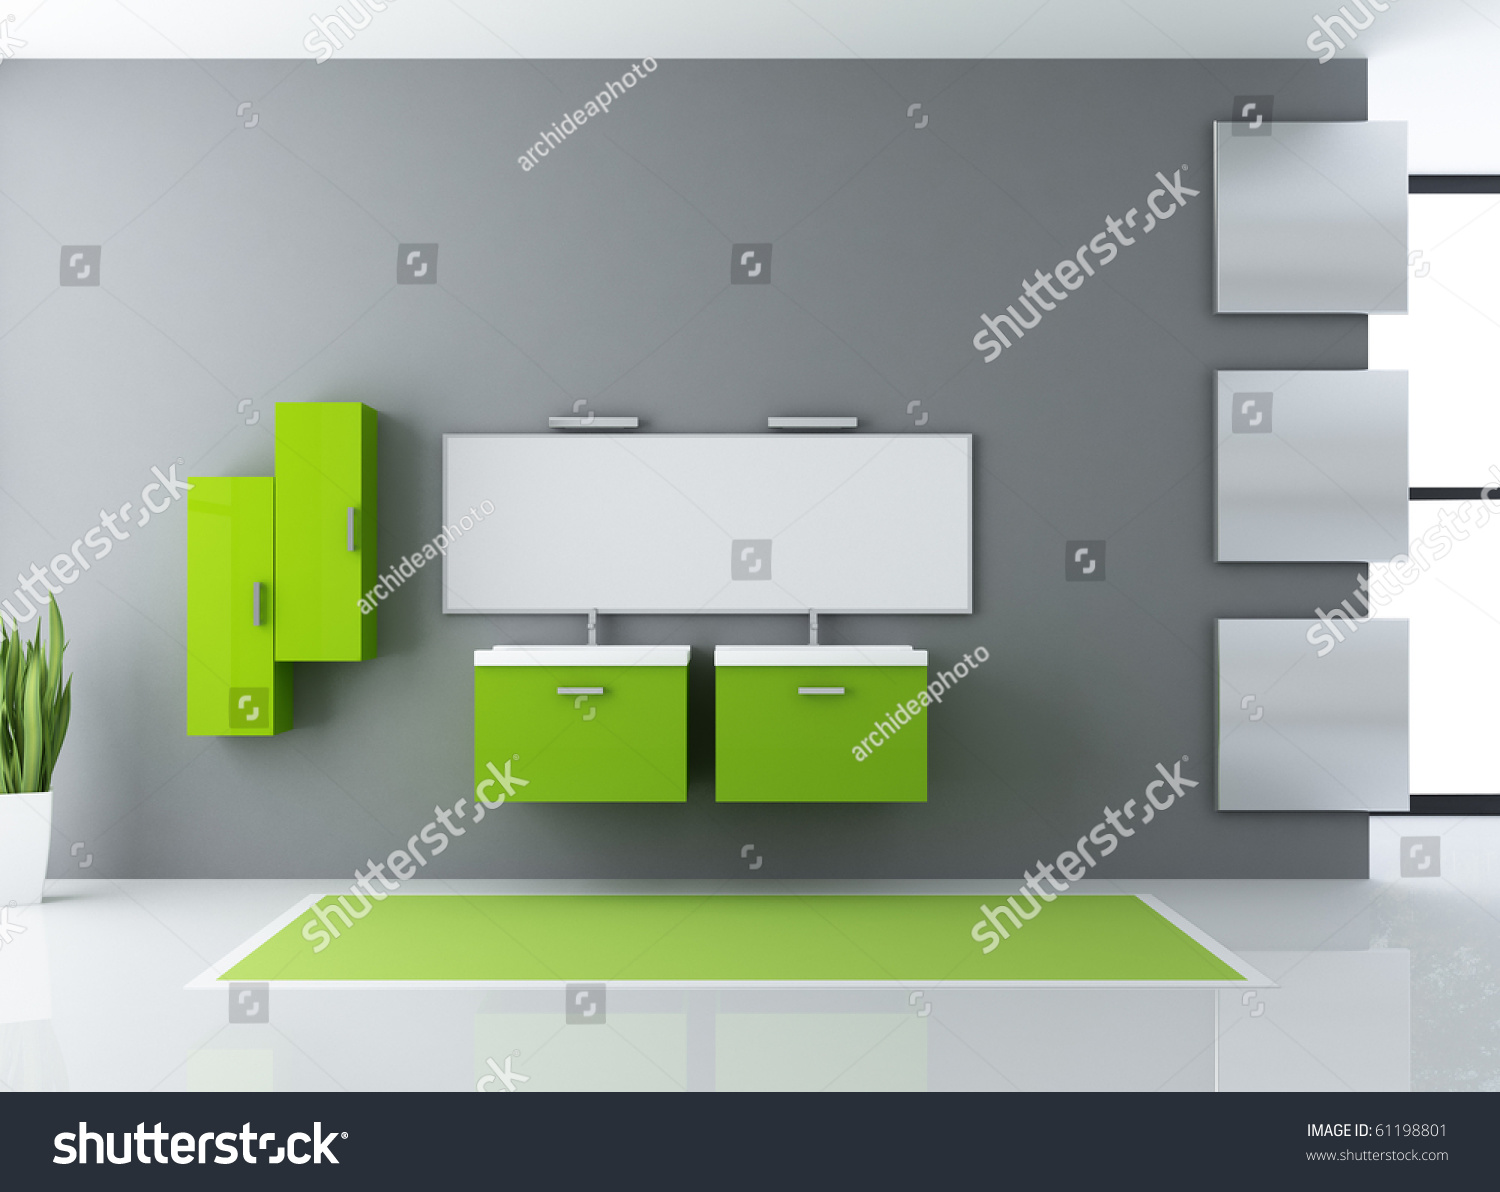 Minimalist Green And Gray Modern Bathroom Rendering Minimalist Green Gray Modern Bathroom Rendering Stock Illustration